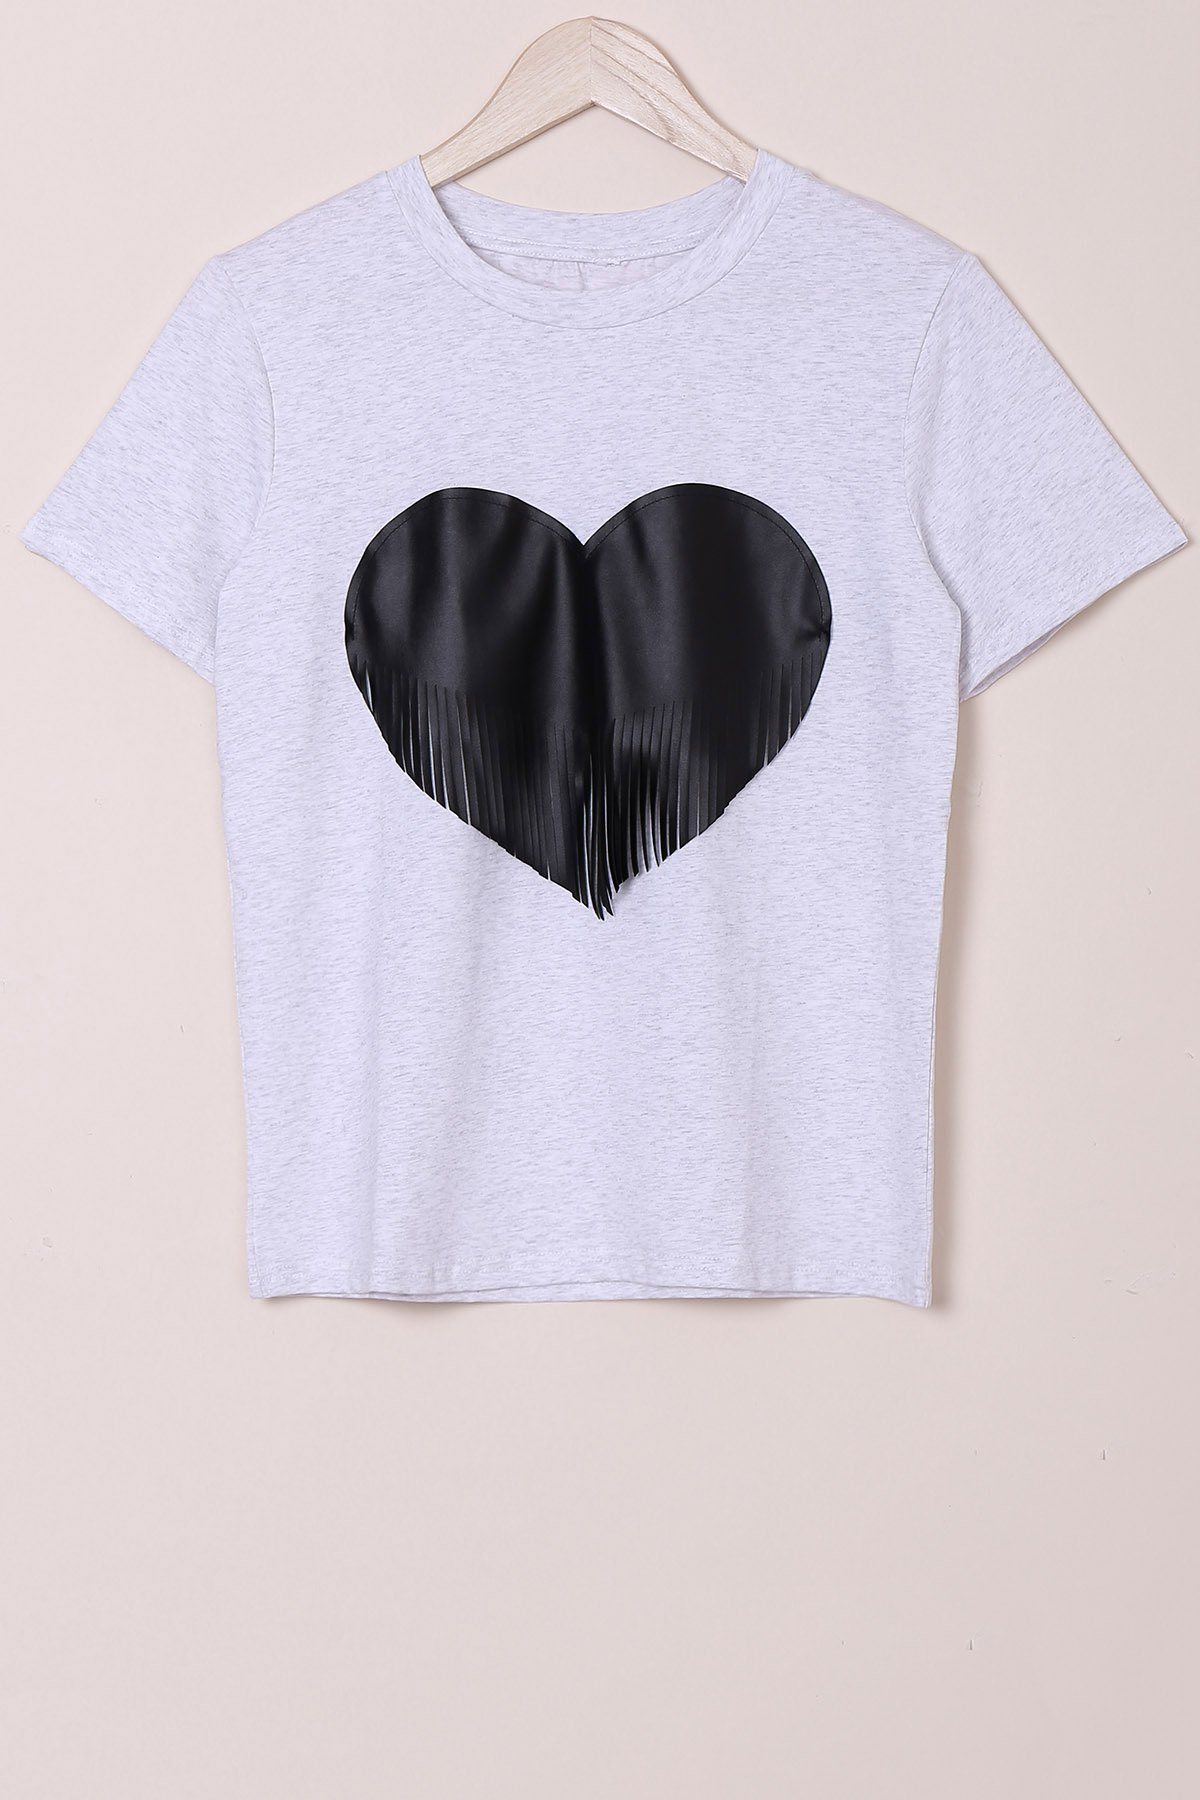 Casual Round Collar Heat Shape Printed Tassel Design T-Shirt For Women - LIGHT GRAY M